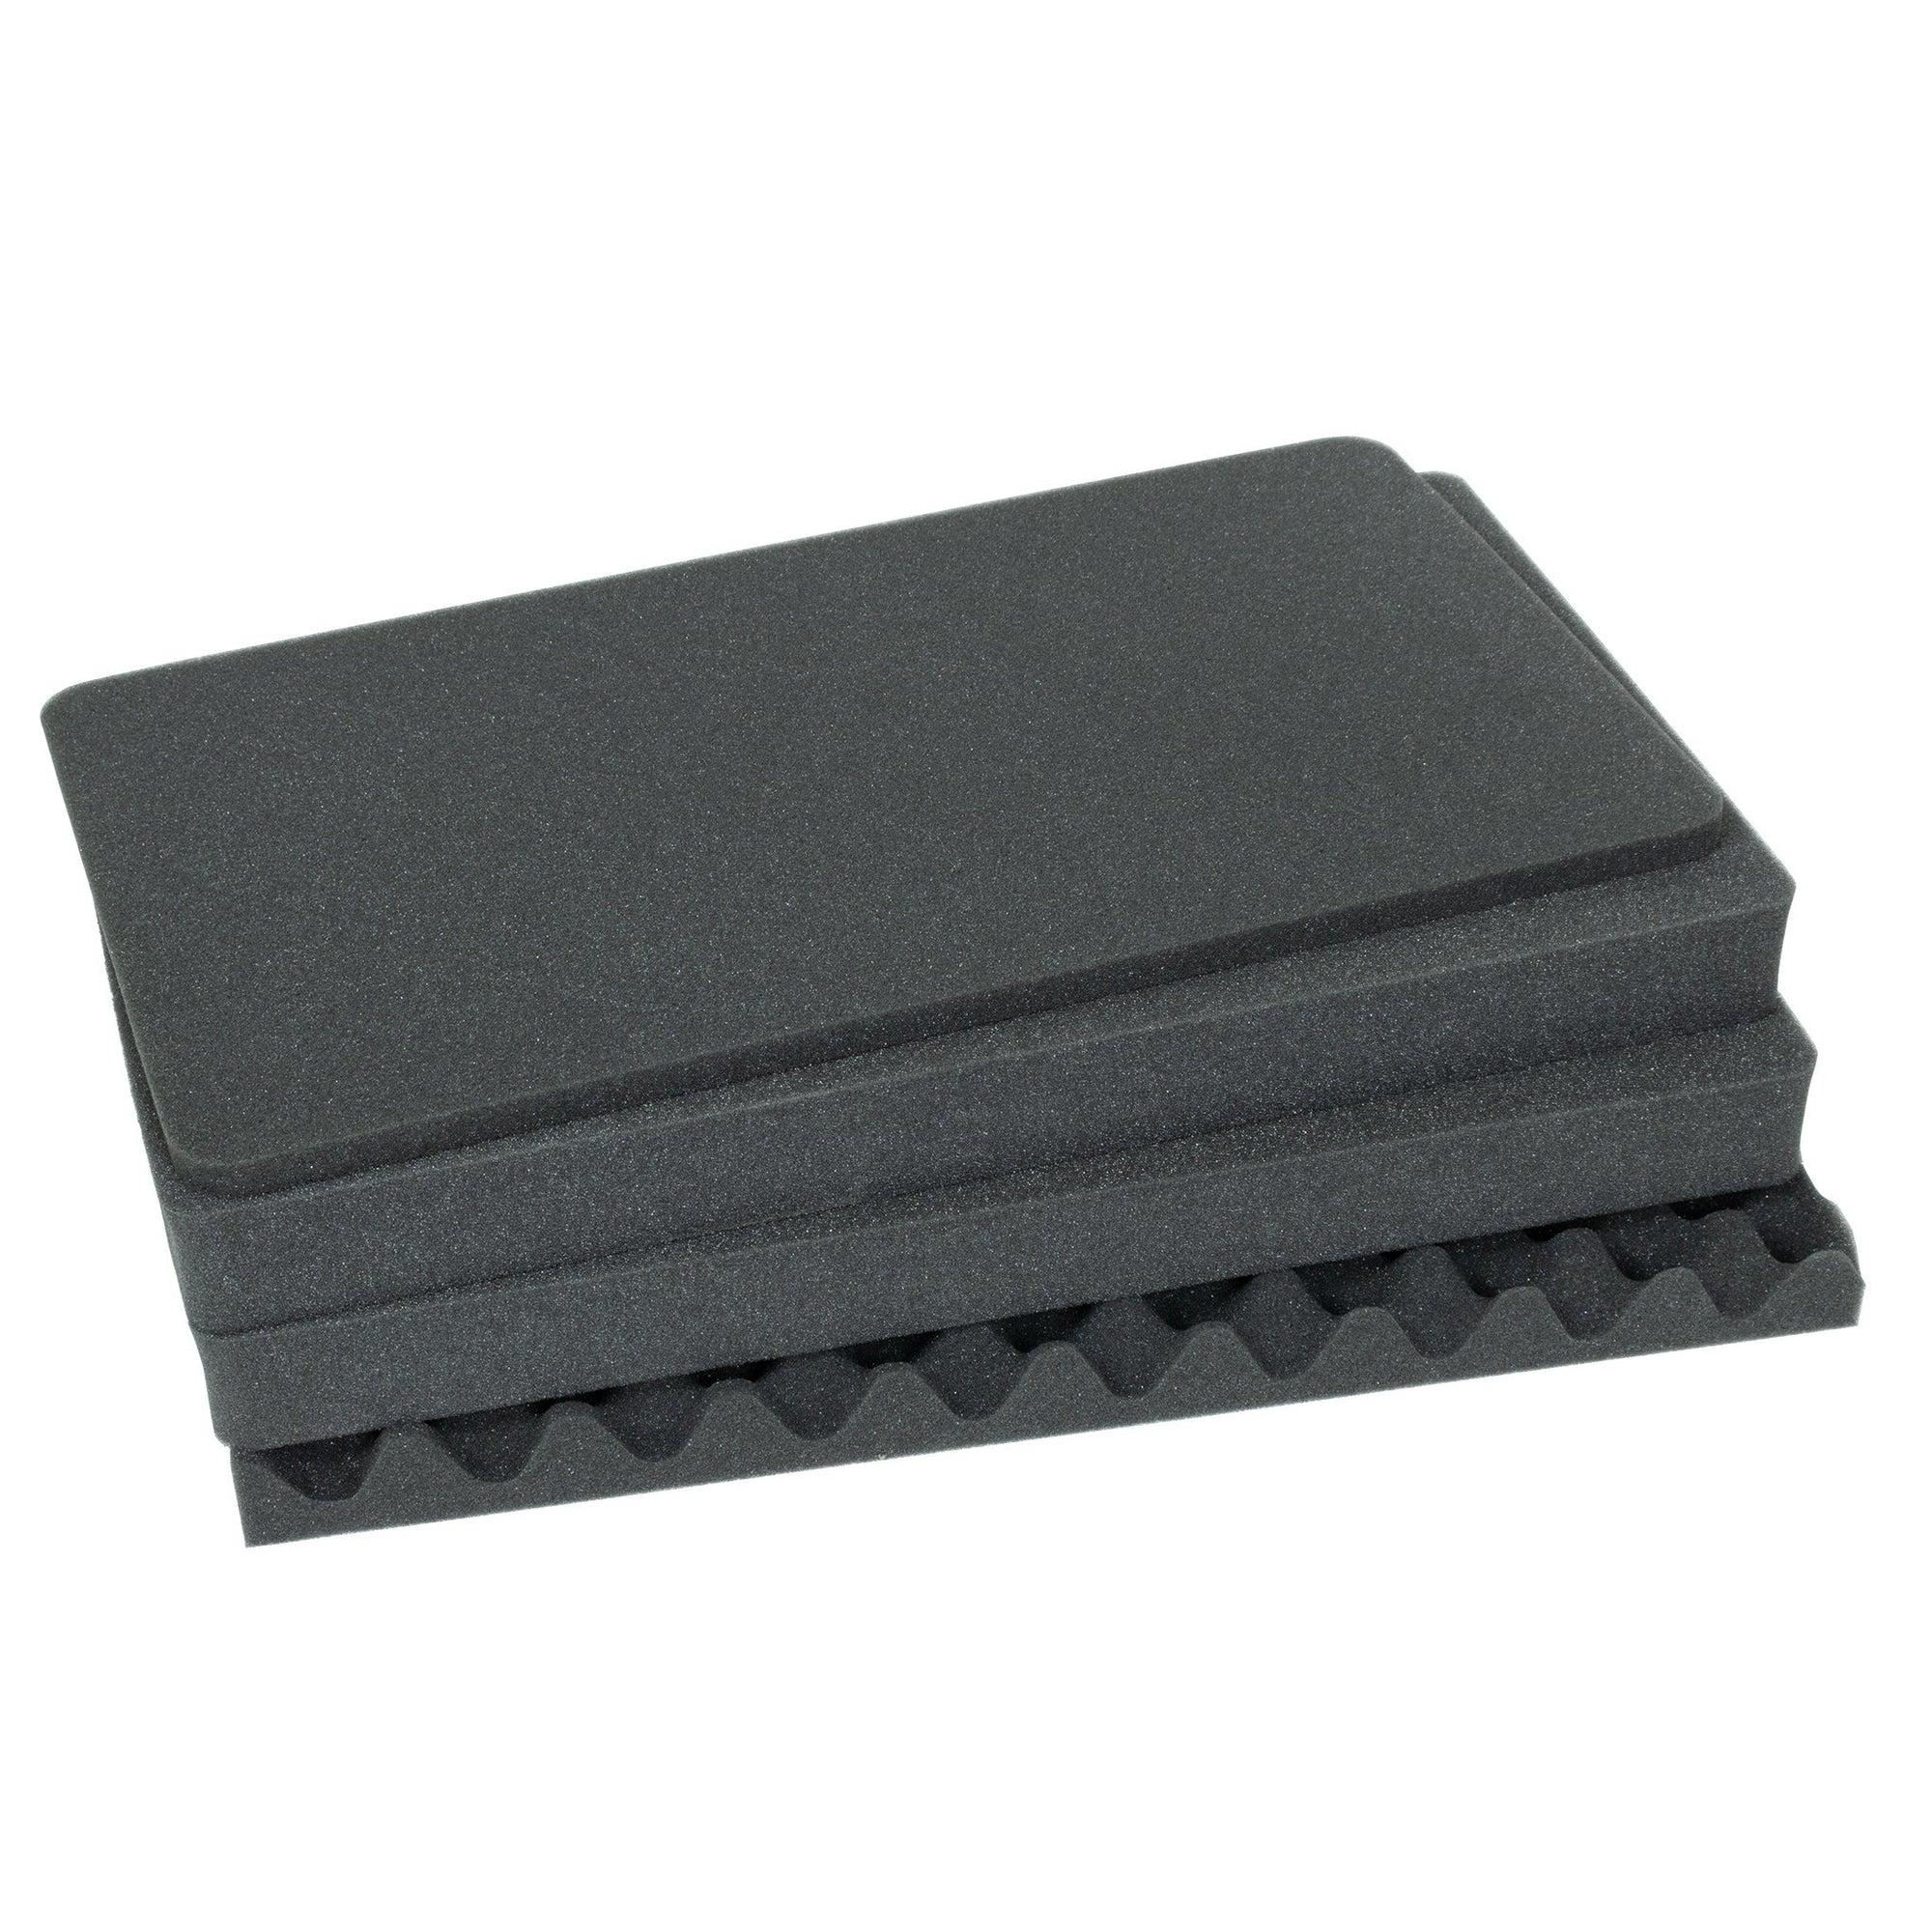 Pelican 1525 Replacement Foam